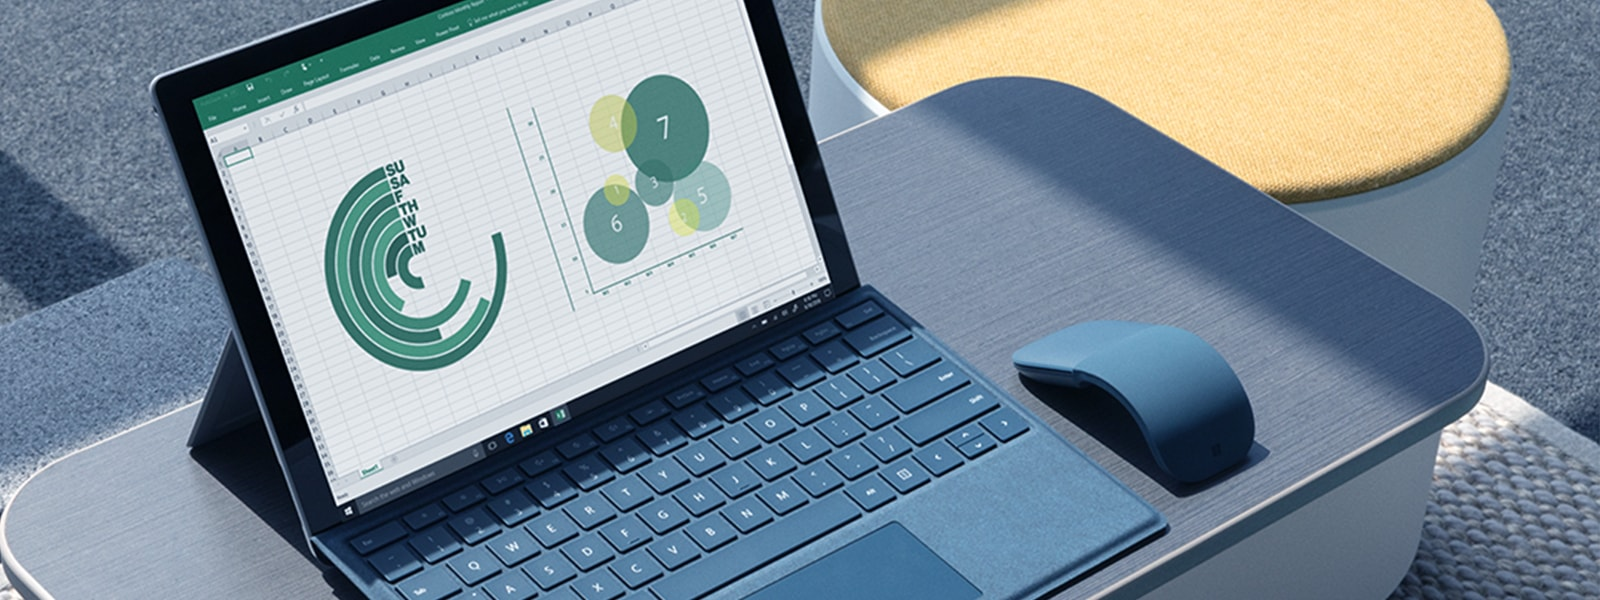 Surface Pro with LTE Advanced with Excel on the screen and Surface ArcTouch Mouse sit on a table in a Steelcase space.